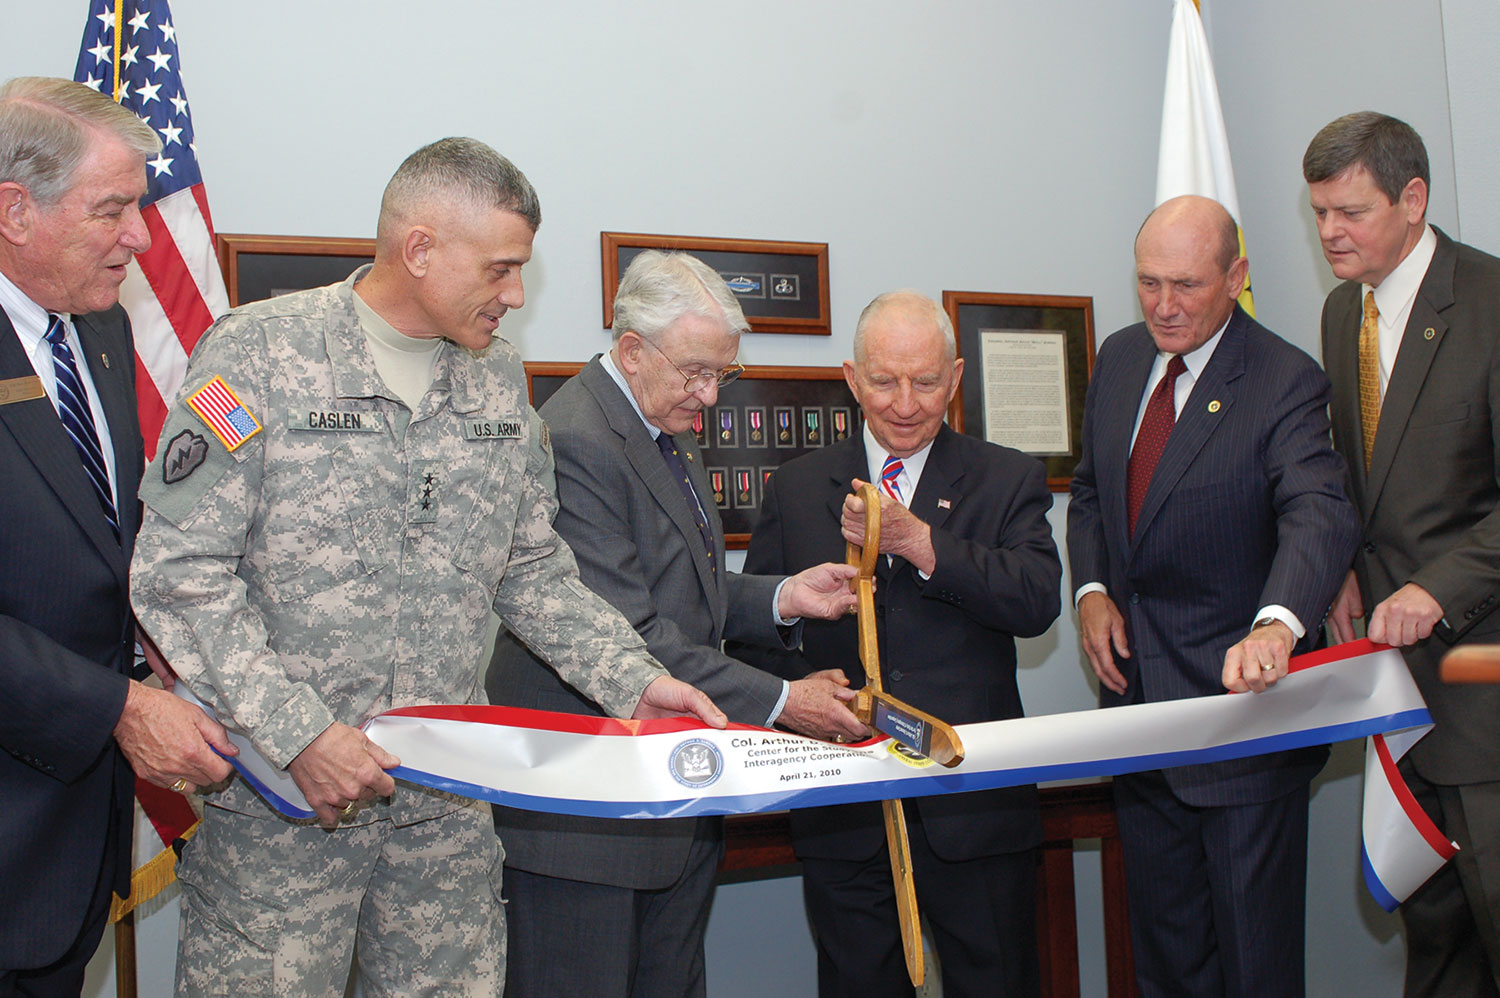 From left, Foundation CEO Bob Ulin, Fort Leavenworth Commander/CGSC Commandant Lt. Gen. Robert L. Caslen, Jr., Foundation Chairman Lt. Gen. (Ret.) Robert Arter, Ross Perot, Foundation President Hyrum Smith, and the Chief Operating Officer of the Simons Center, Maj. Gen. (Ret.) Ray Barrett, cut the ribbon for the opening of the Col. Arthur D. Simons Center for the Study of Interagency Cooperation, April 21, 2010. (photo by Mark H. Wiggins)